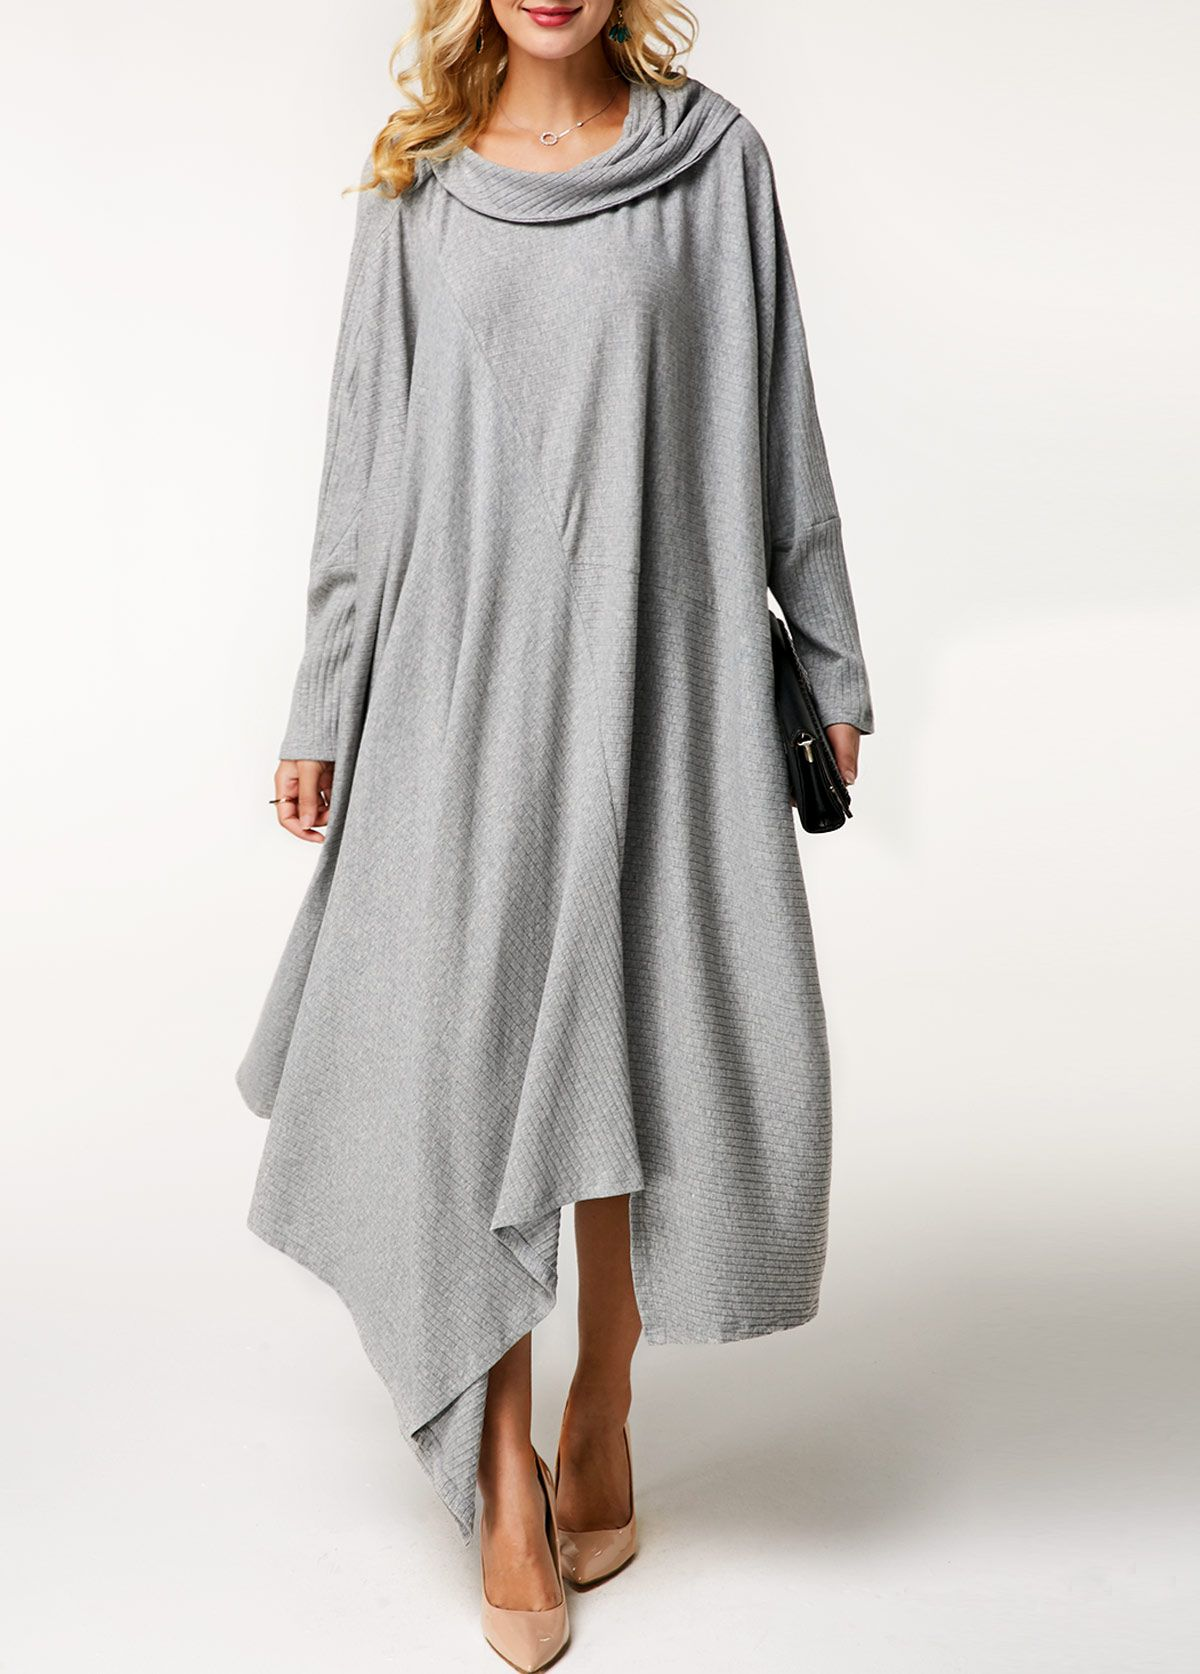 9c6c53d44ff Asymmetric Hem Light Grey Cowl Neck Sweater Dress | Rotita.com - USD $30.35